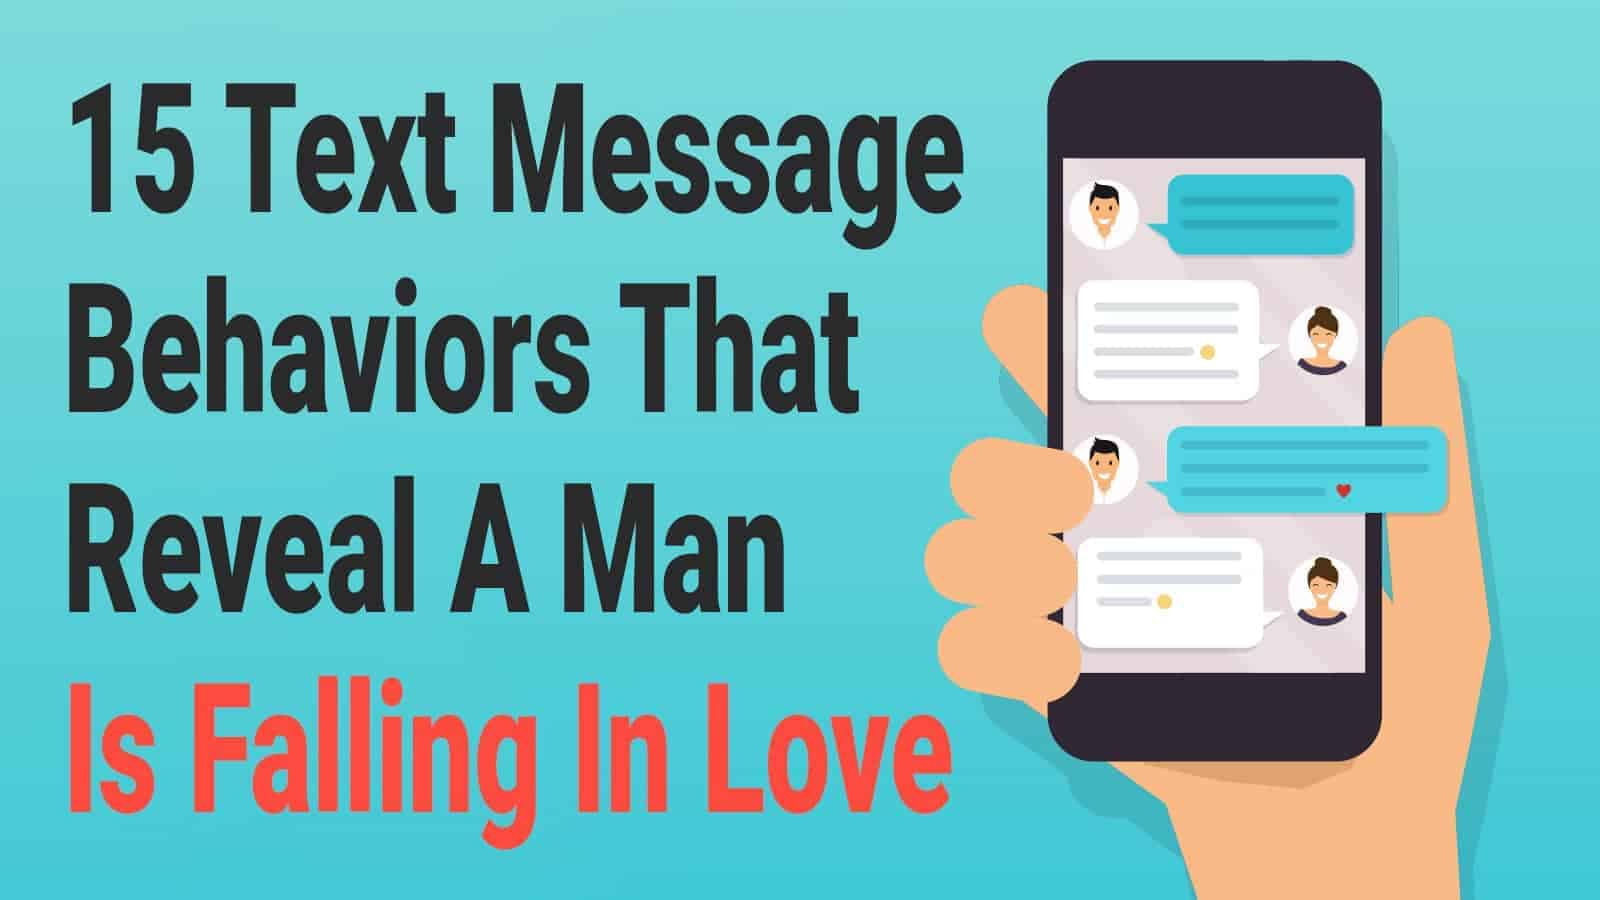 Falling In Love 15 Text Message Behaviors That Reveal A Man Is Falling In Love